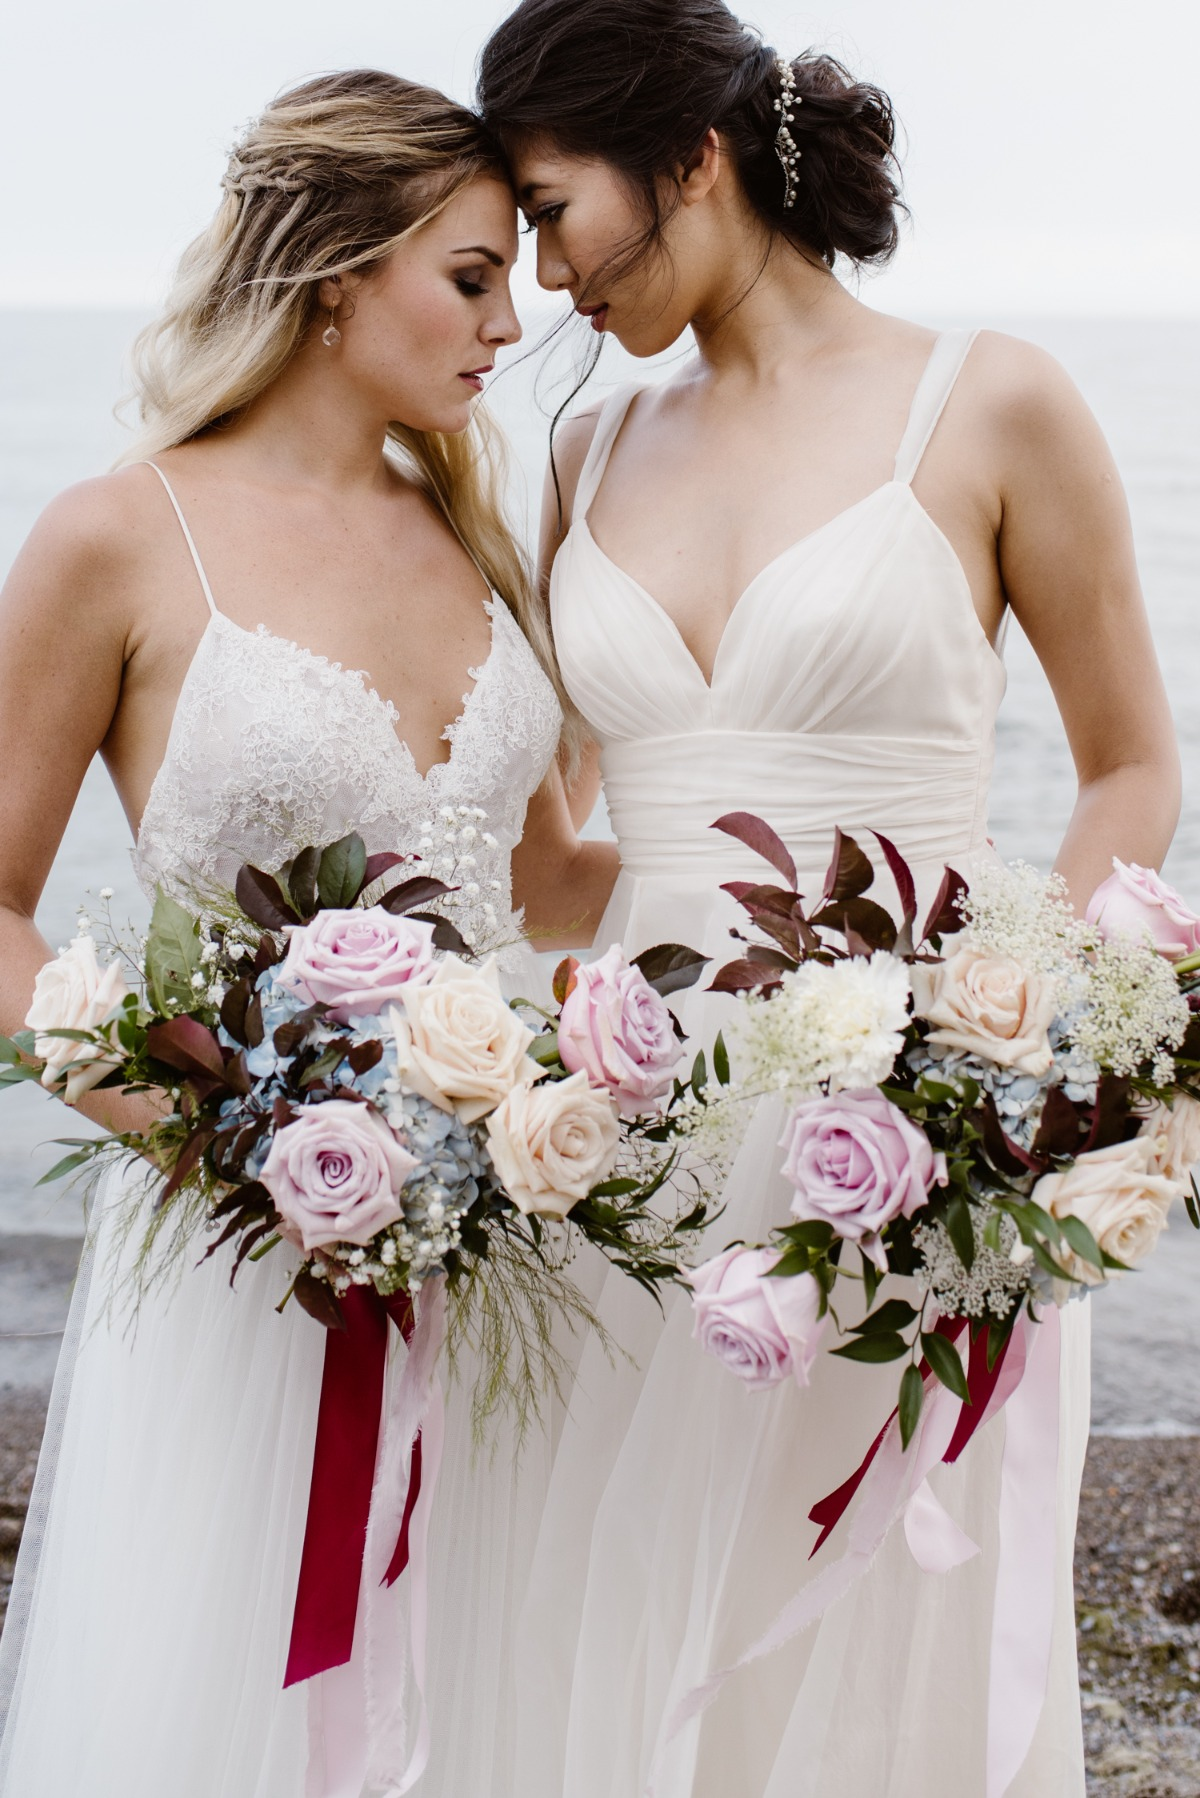 Romantic burgundy and blue lesbian wedding inspiration